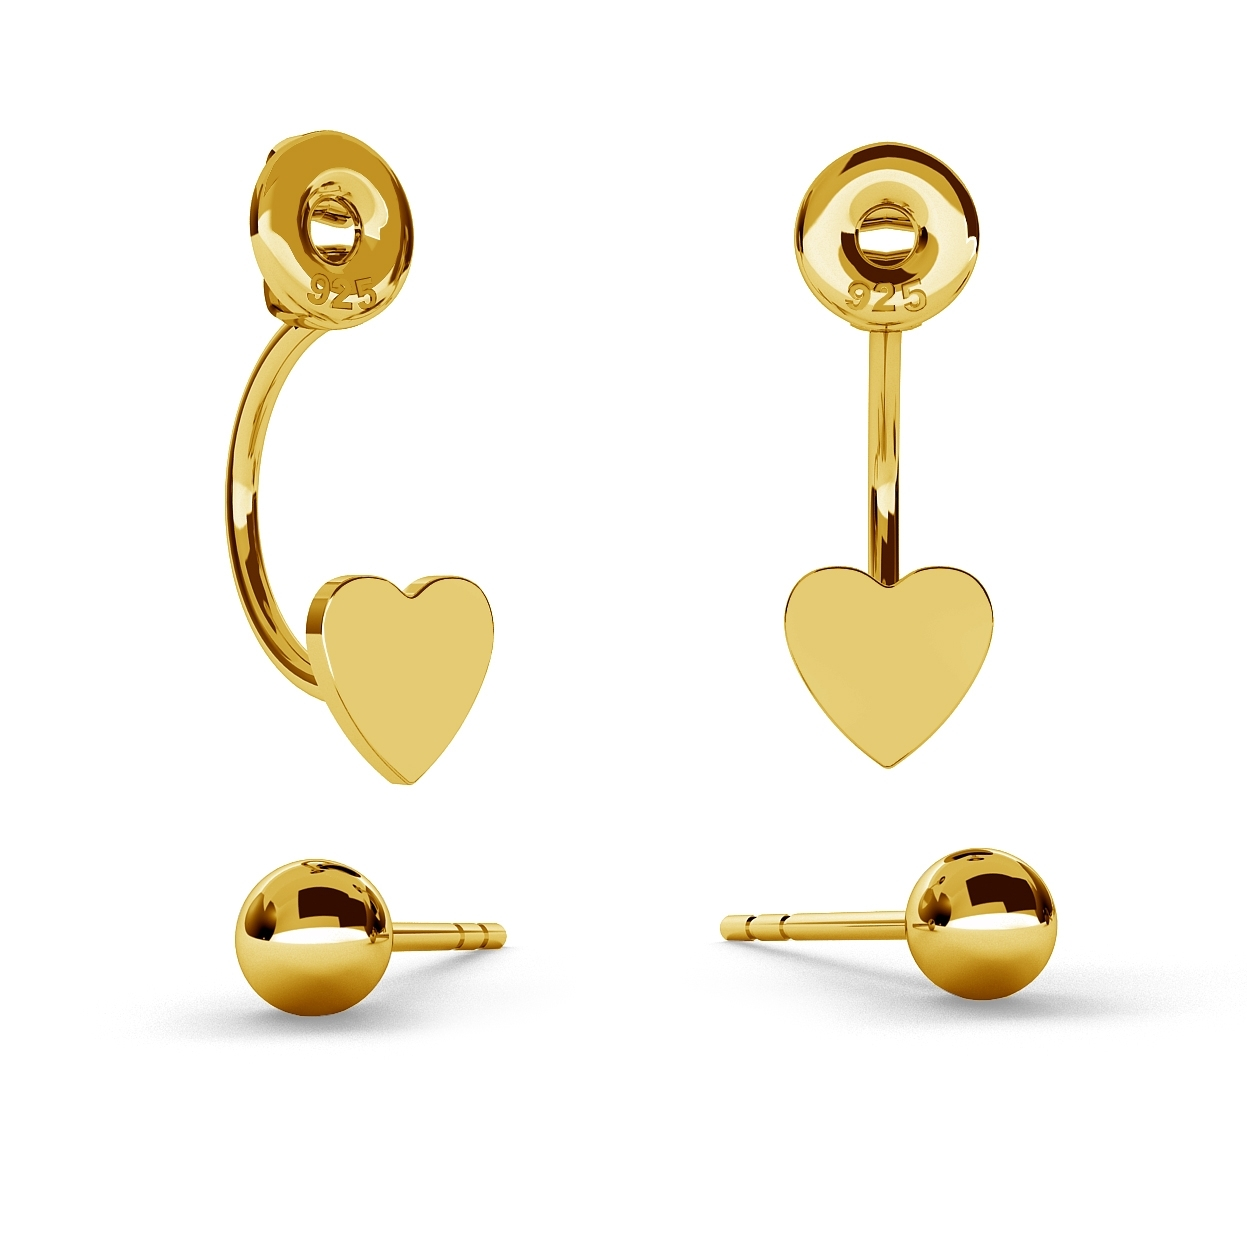 SWING EARRINGS BALL & HEART